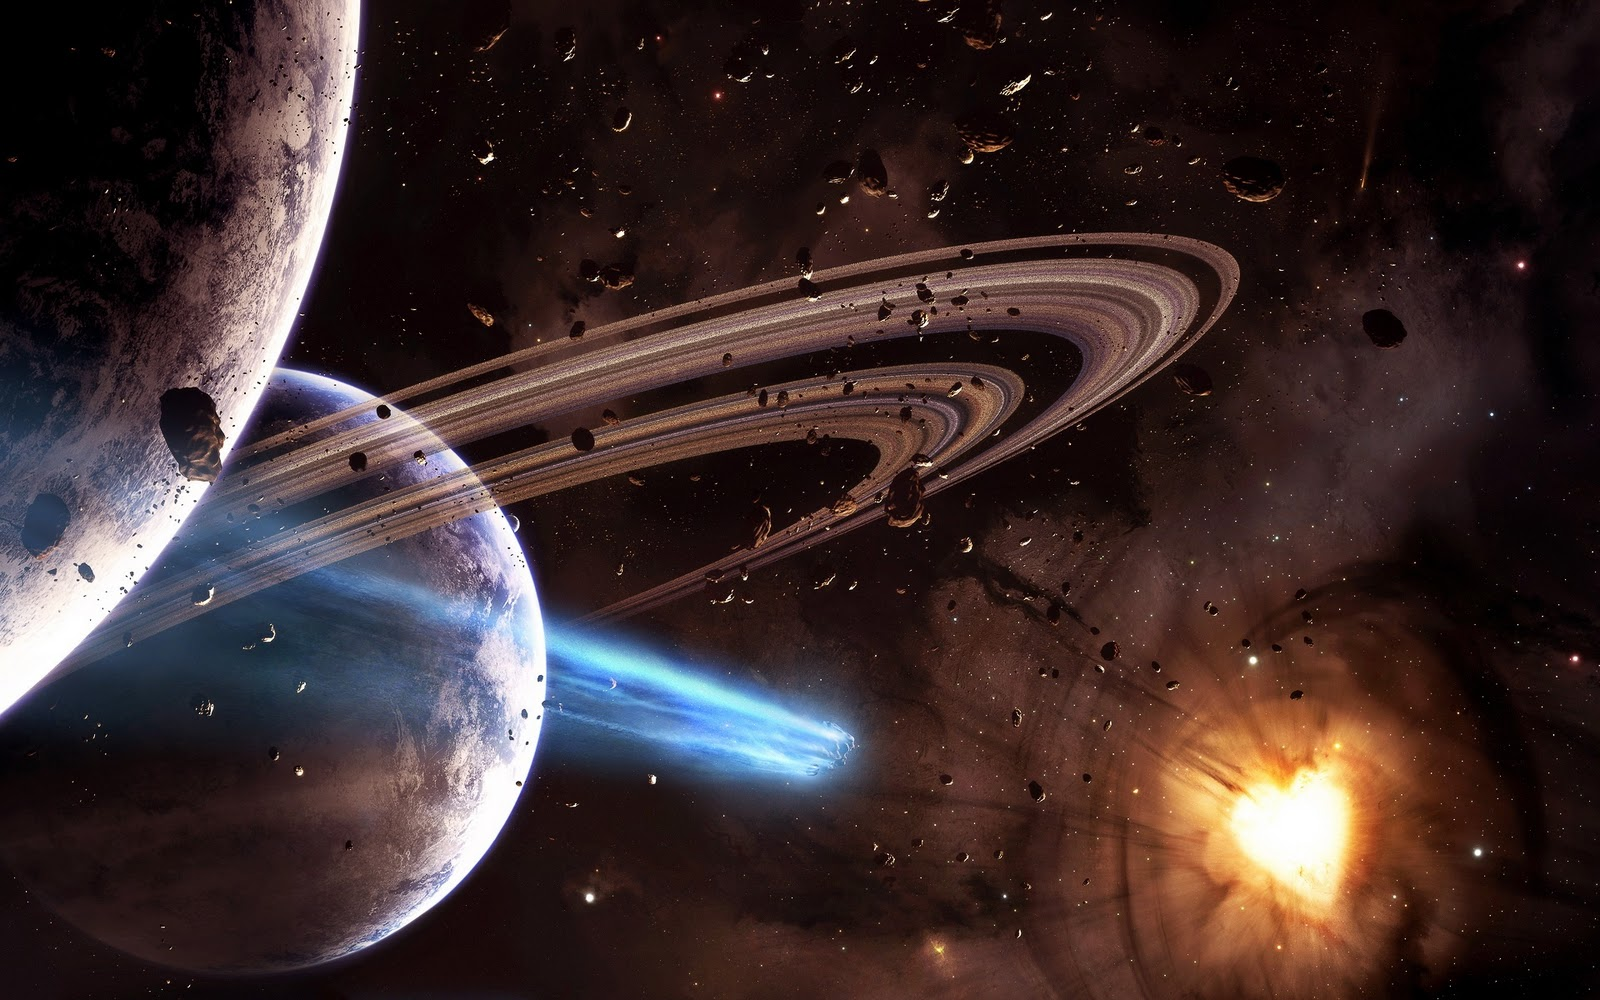 Space wallpapers top world pic - Spacecraft wallpaper ...